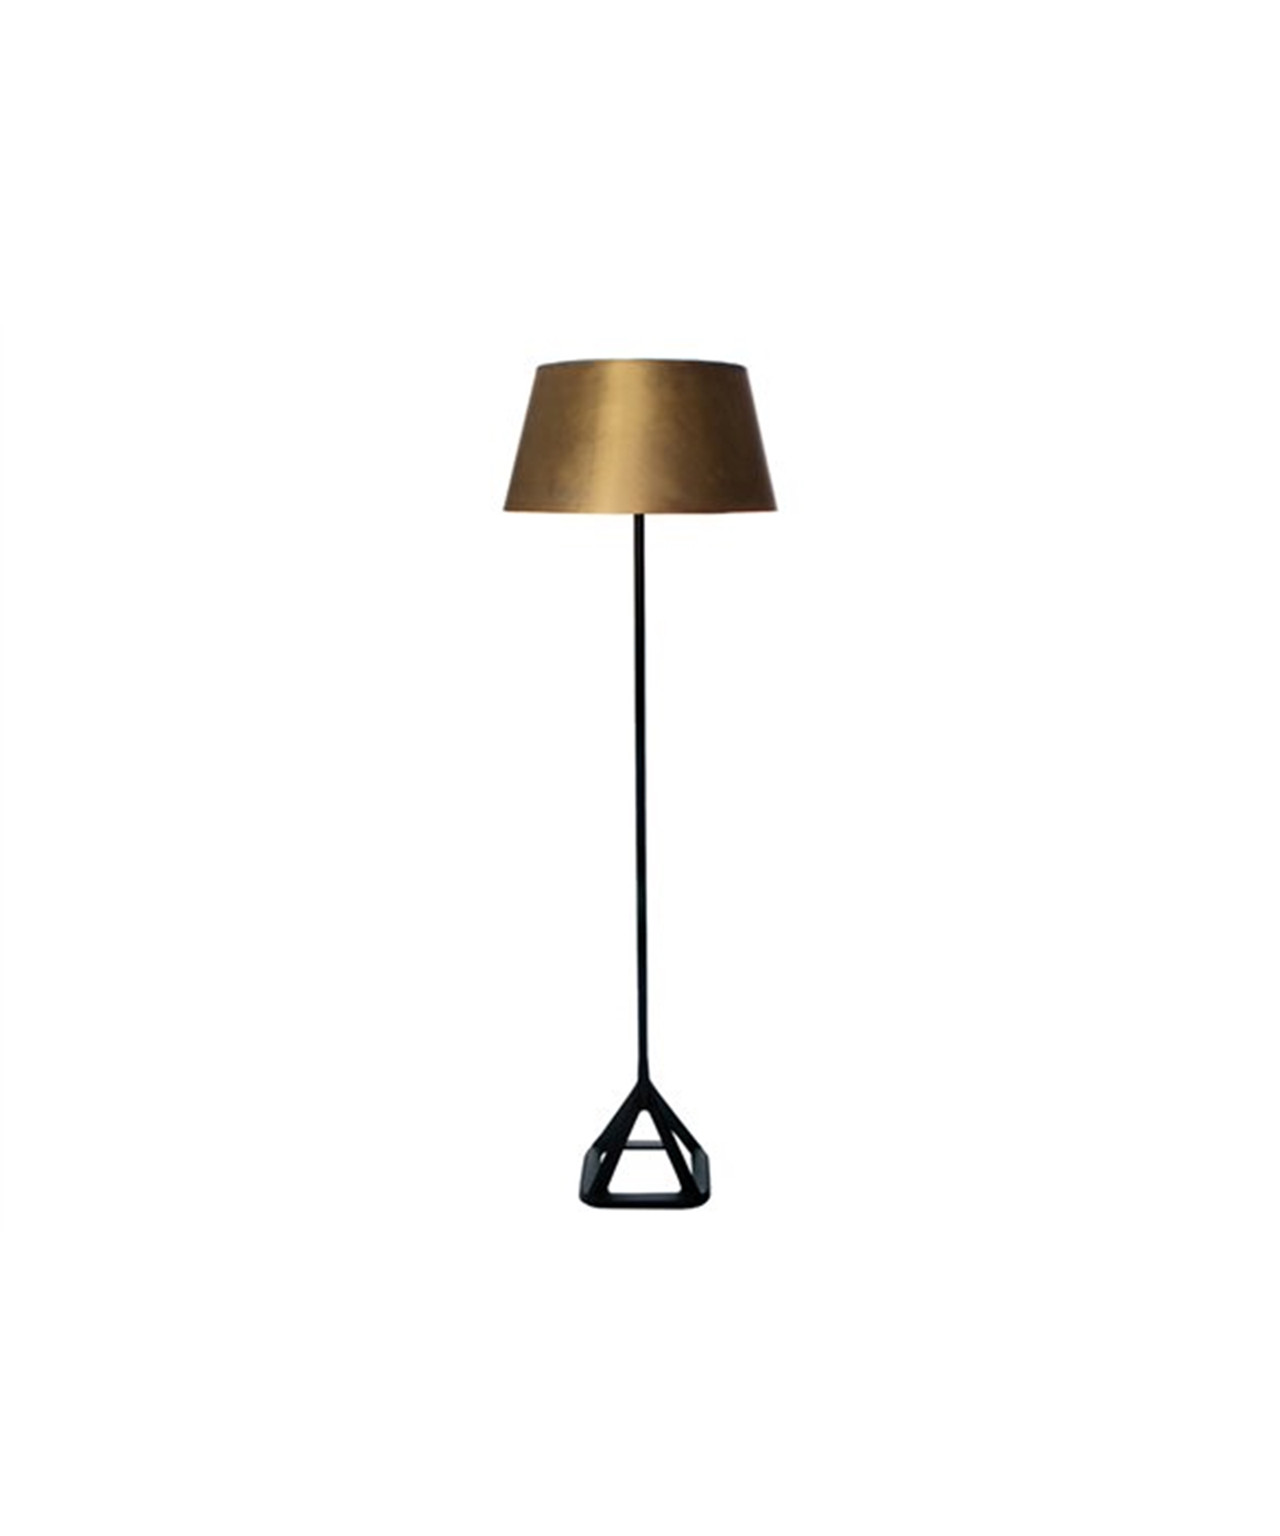 base light messing gulvlampe tom dixon. Black Bedroom Furniture Sets. Home Design Ideas